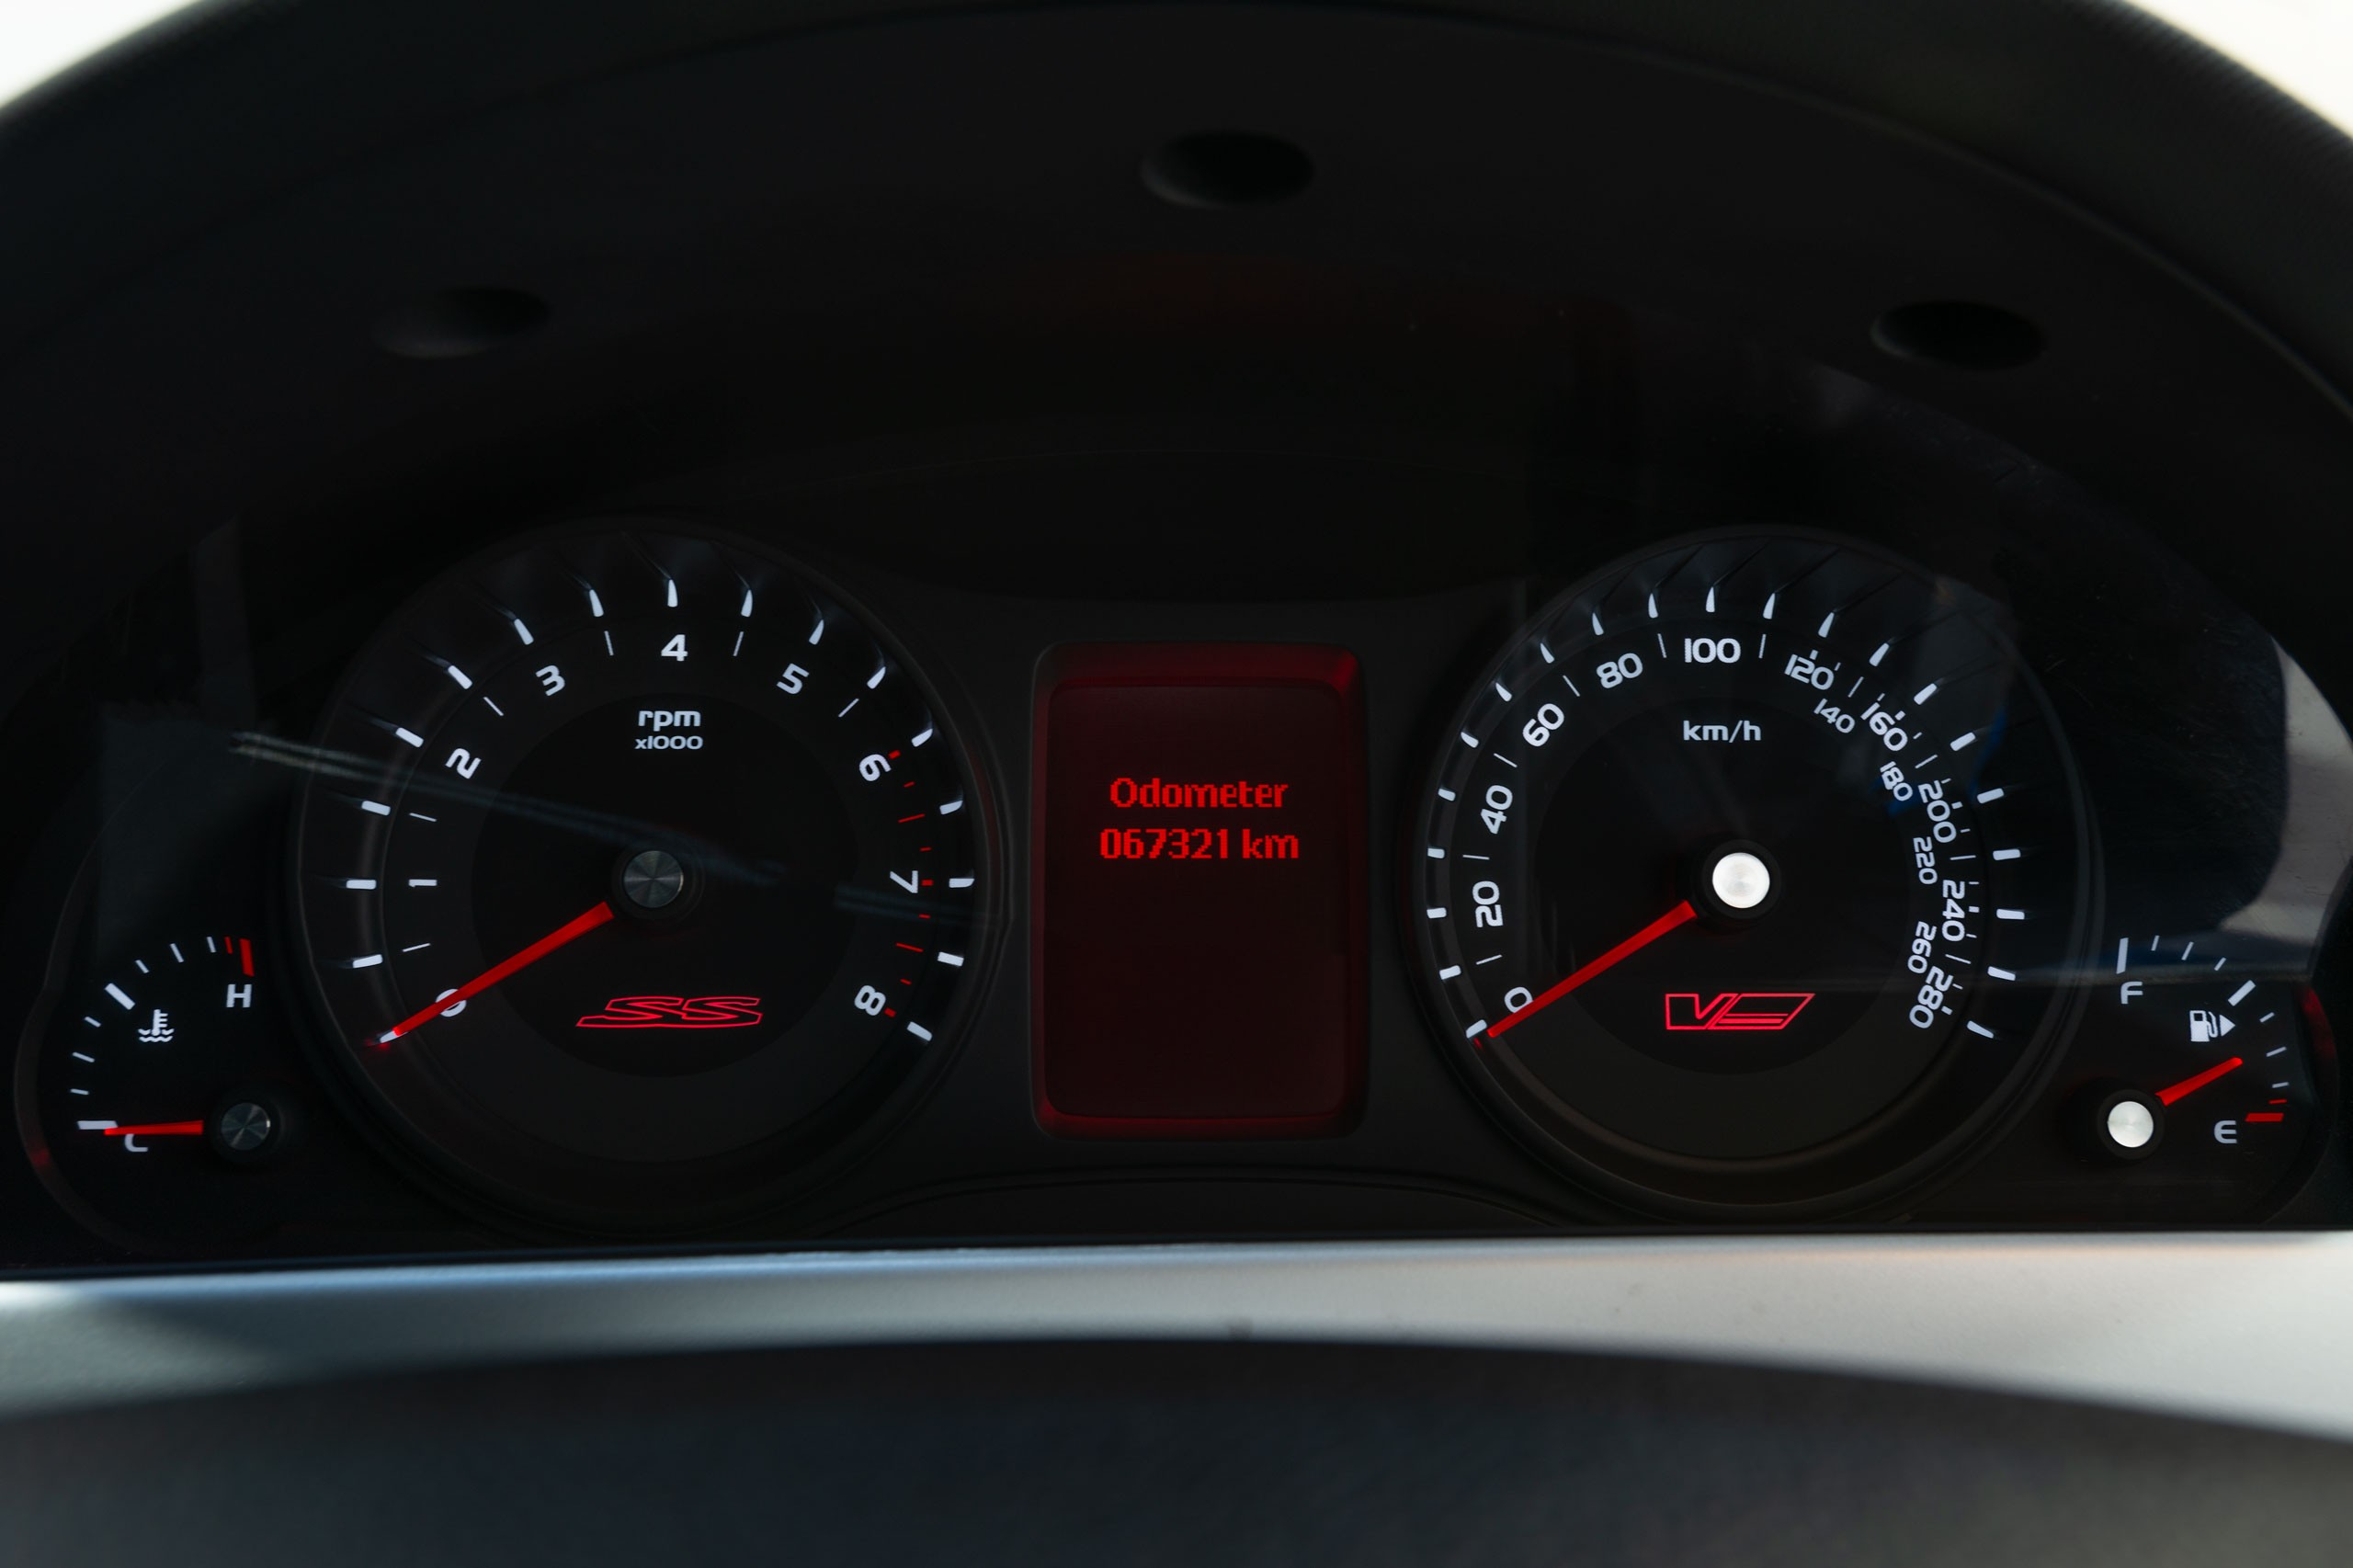 Image 6/10 of 2012 Holden Commodore SS V Z Series